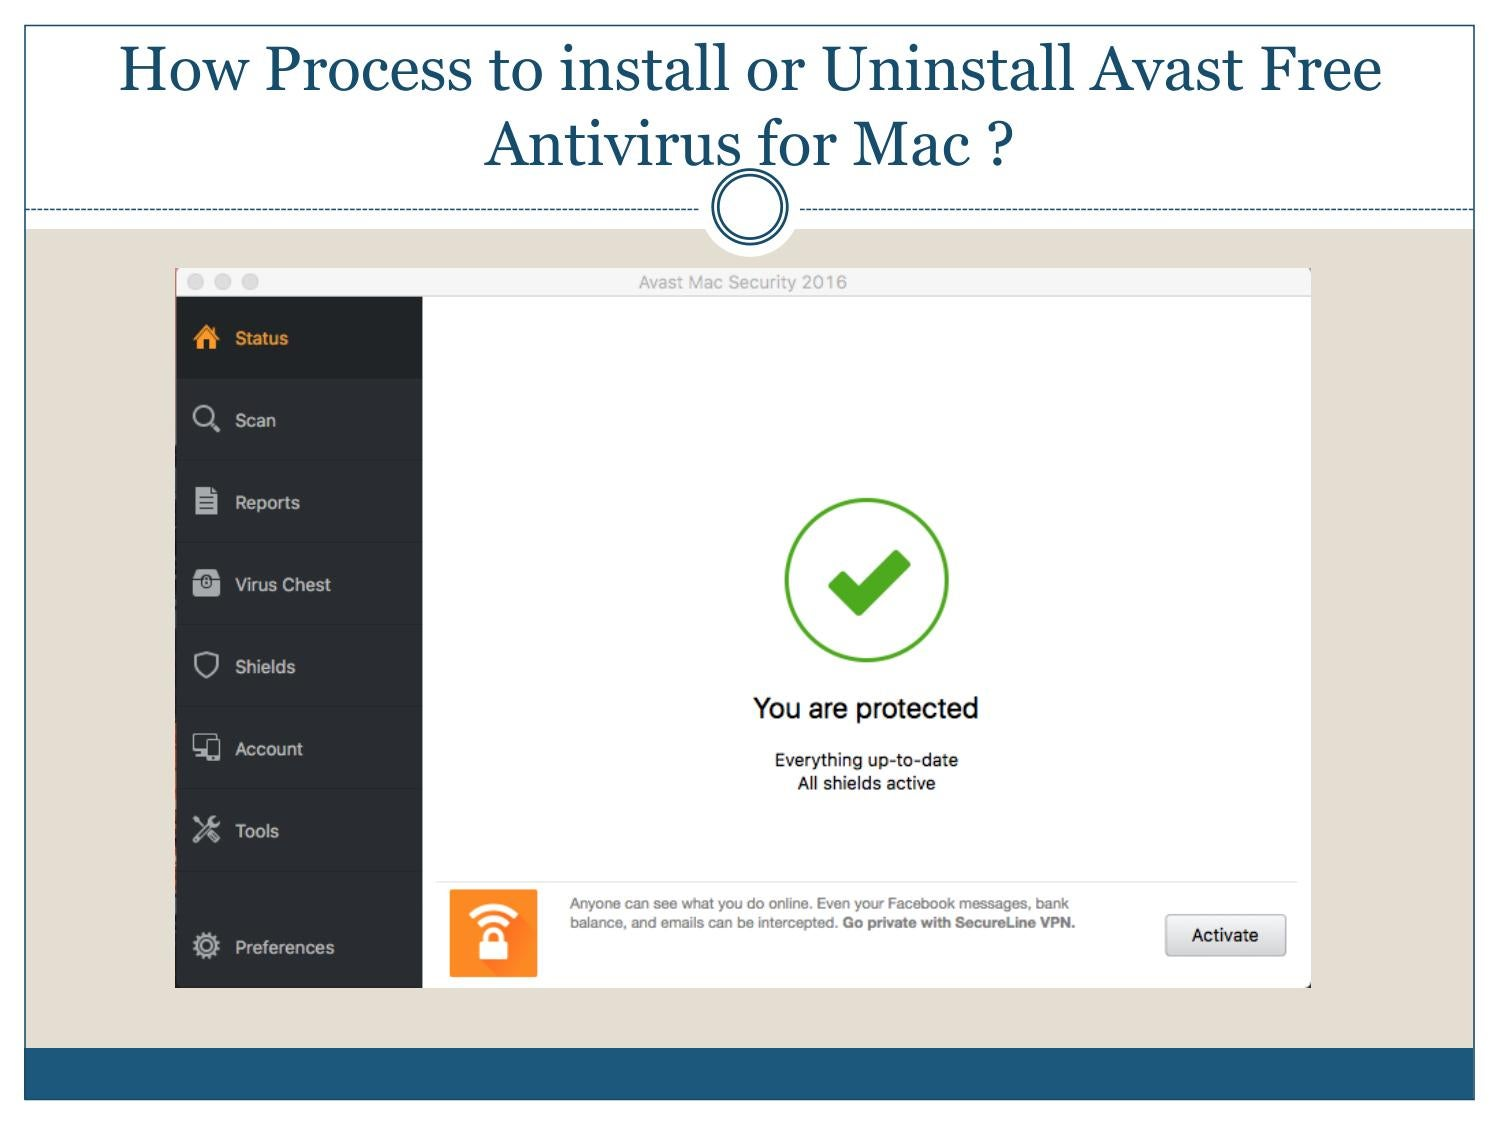 How process to install or uninstall avast free antivirus for mac by